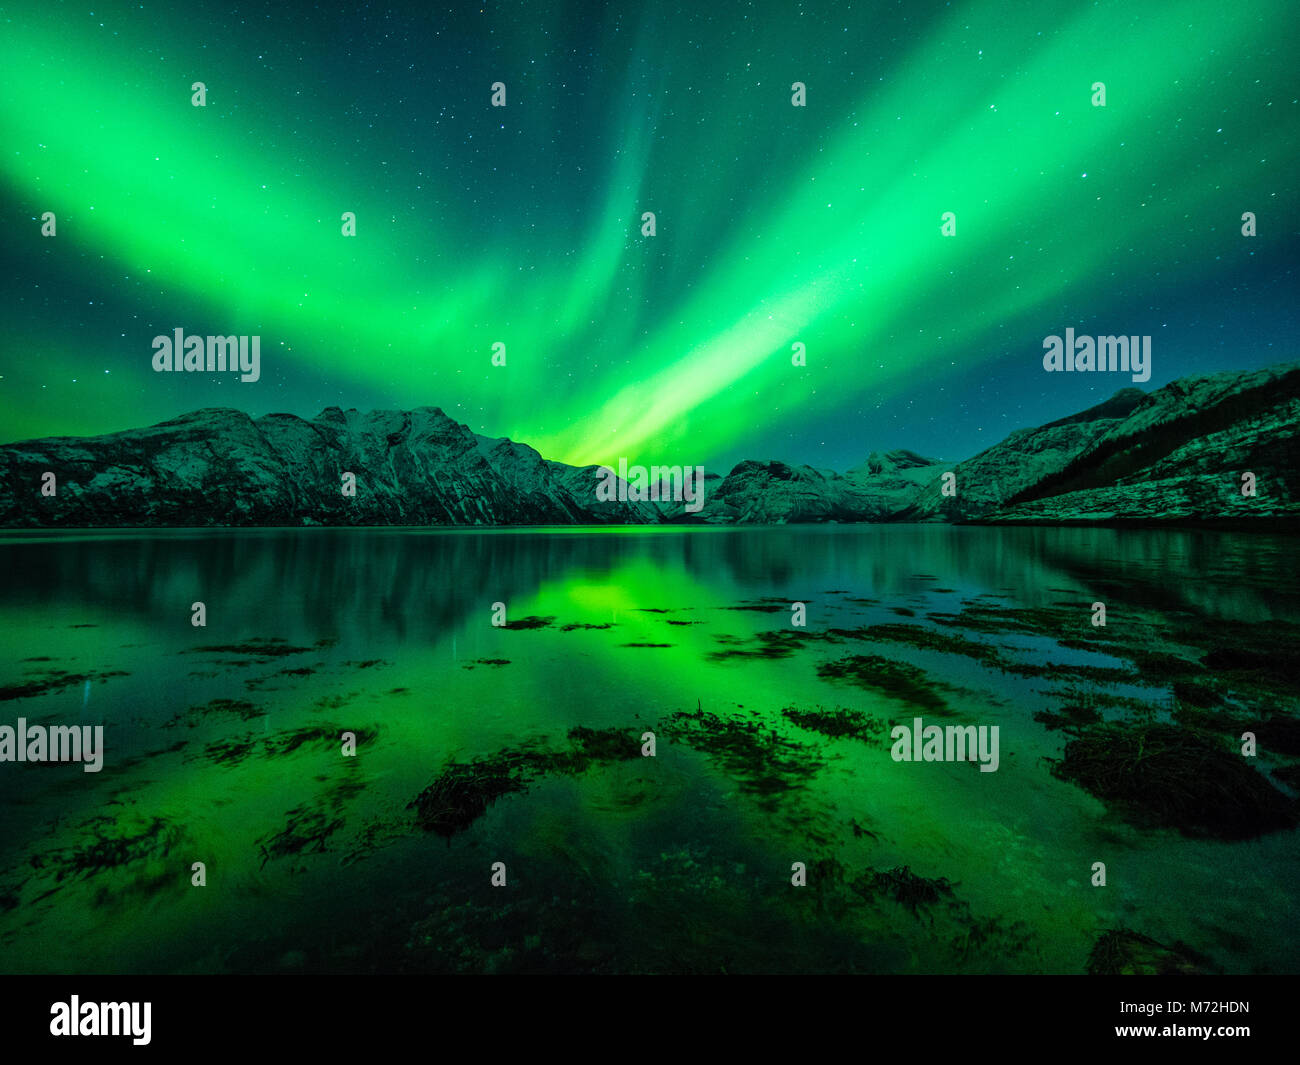 Green lady dances over northern Norway - Stock Image